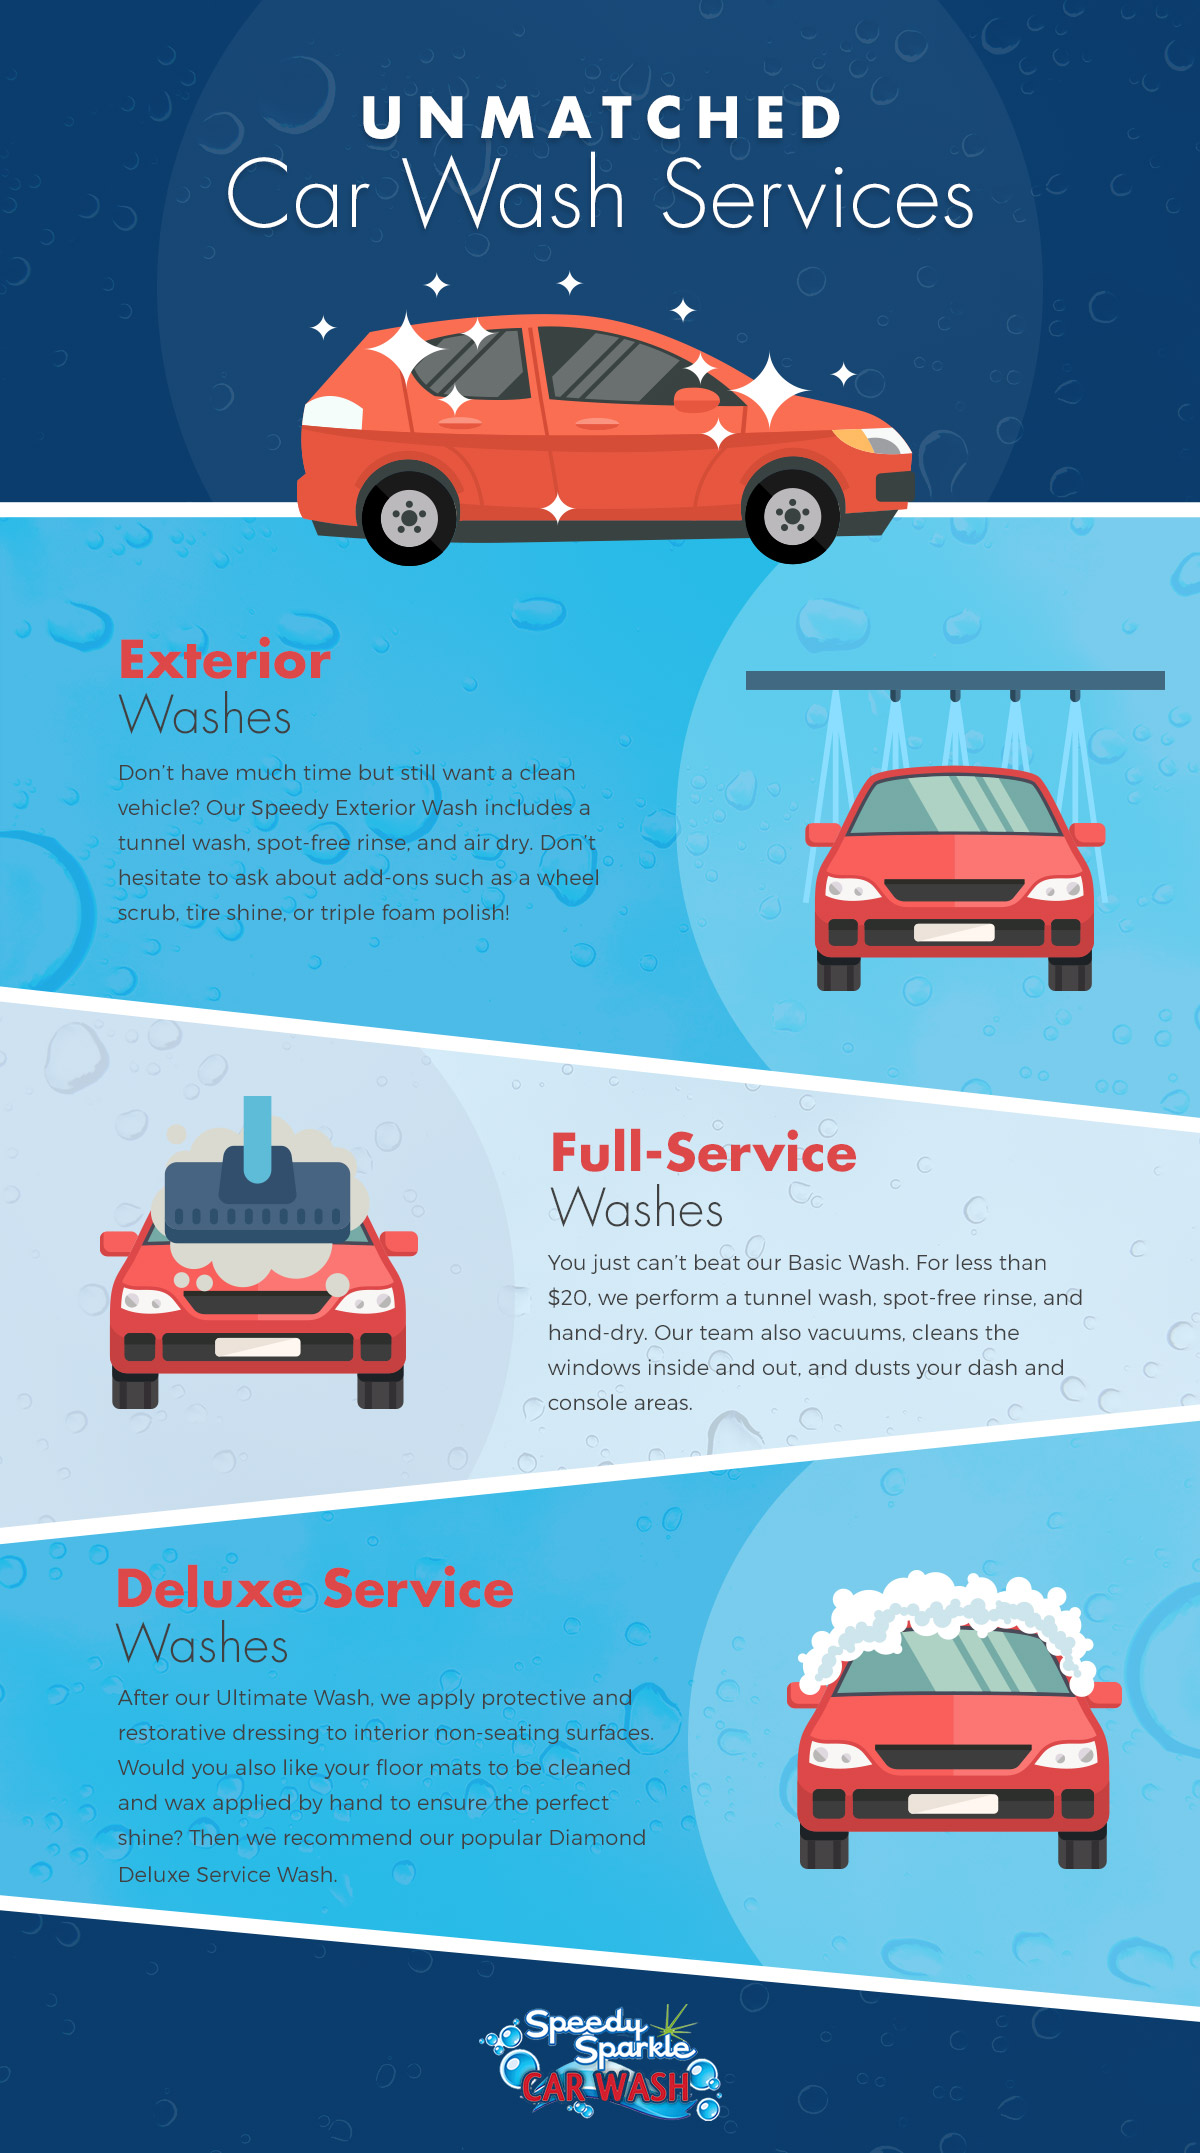 Car Wash Loveland: What To Look For In One Near You